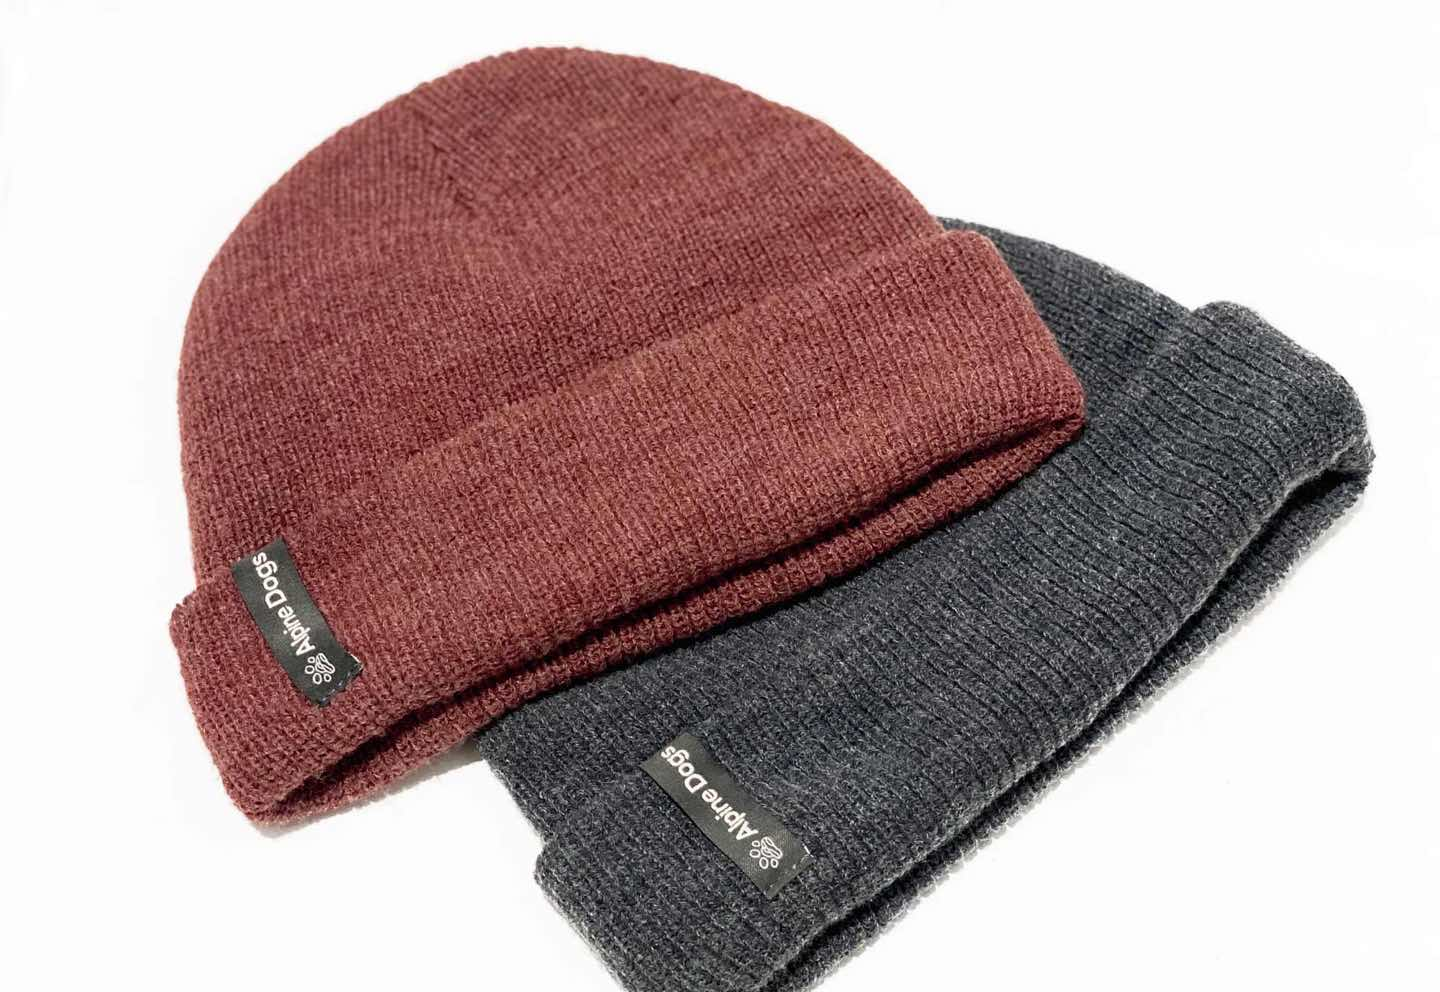 Alpine Dogs branded toques